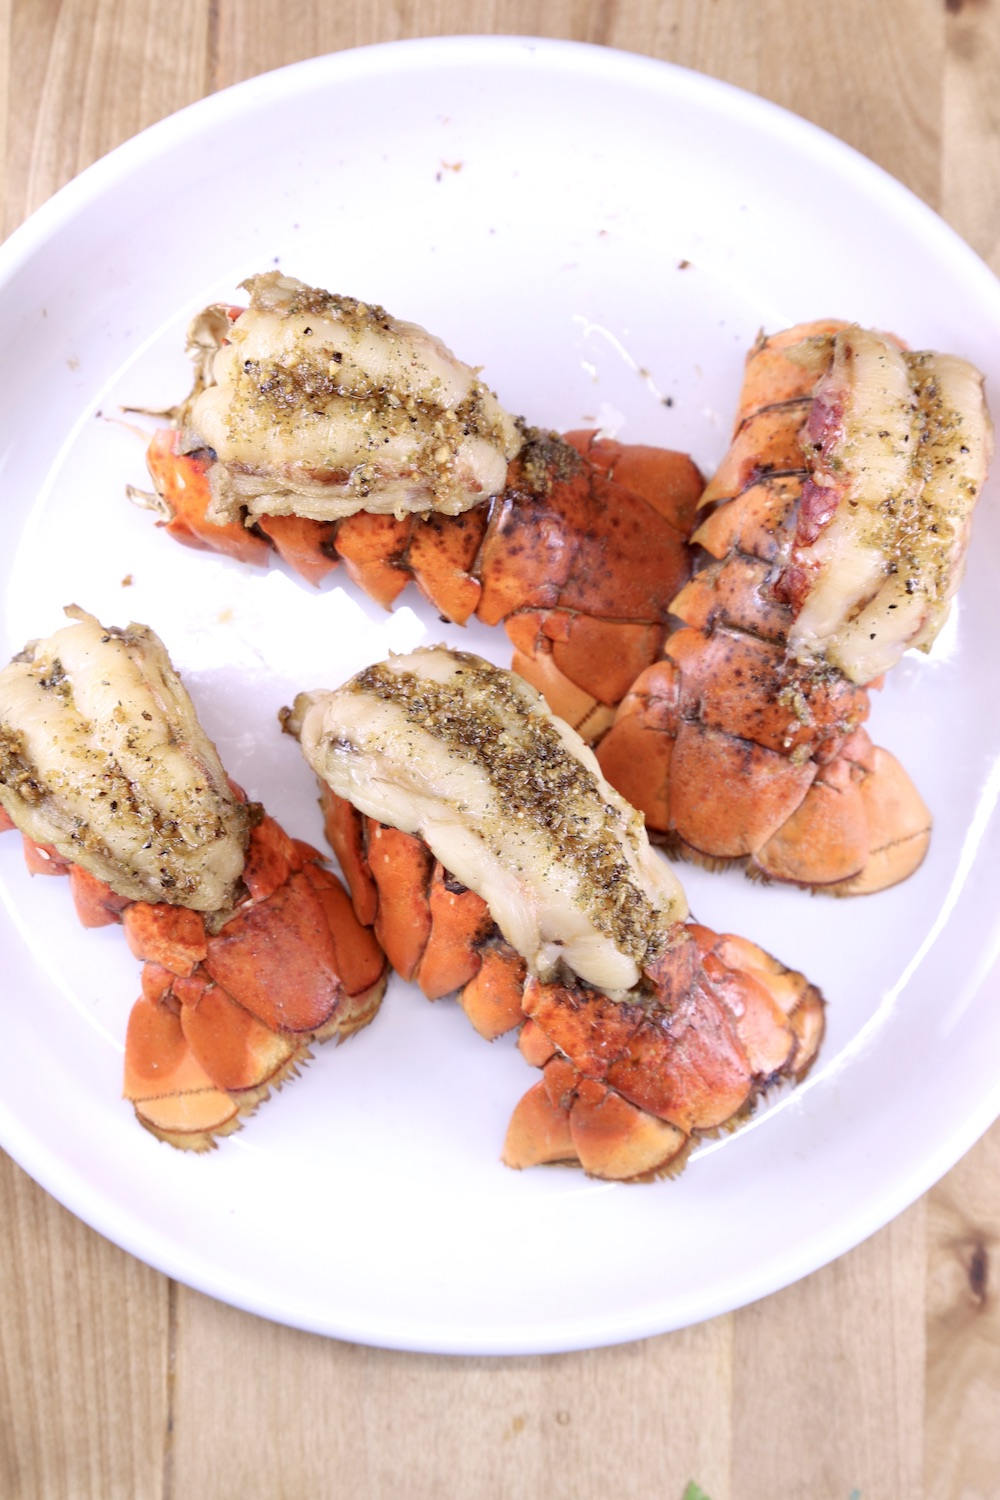 plate of grilled lobster tails